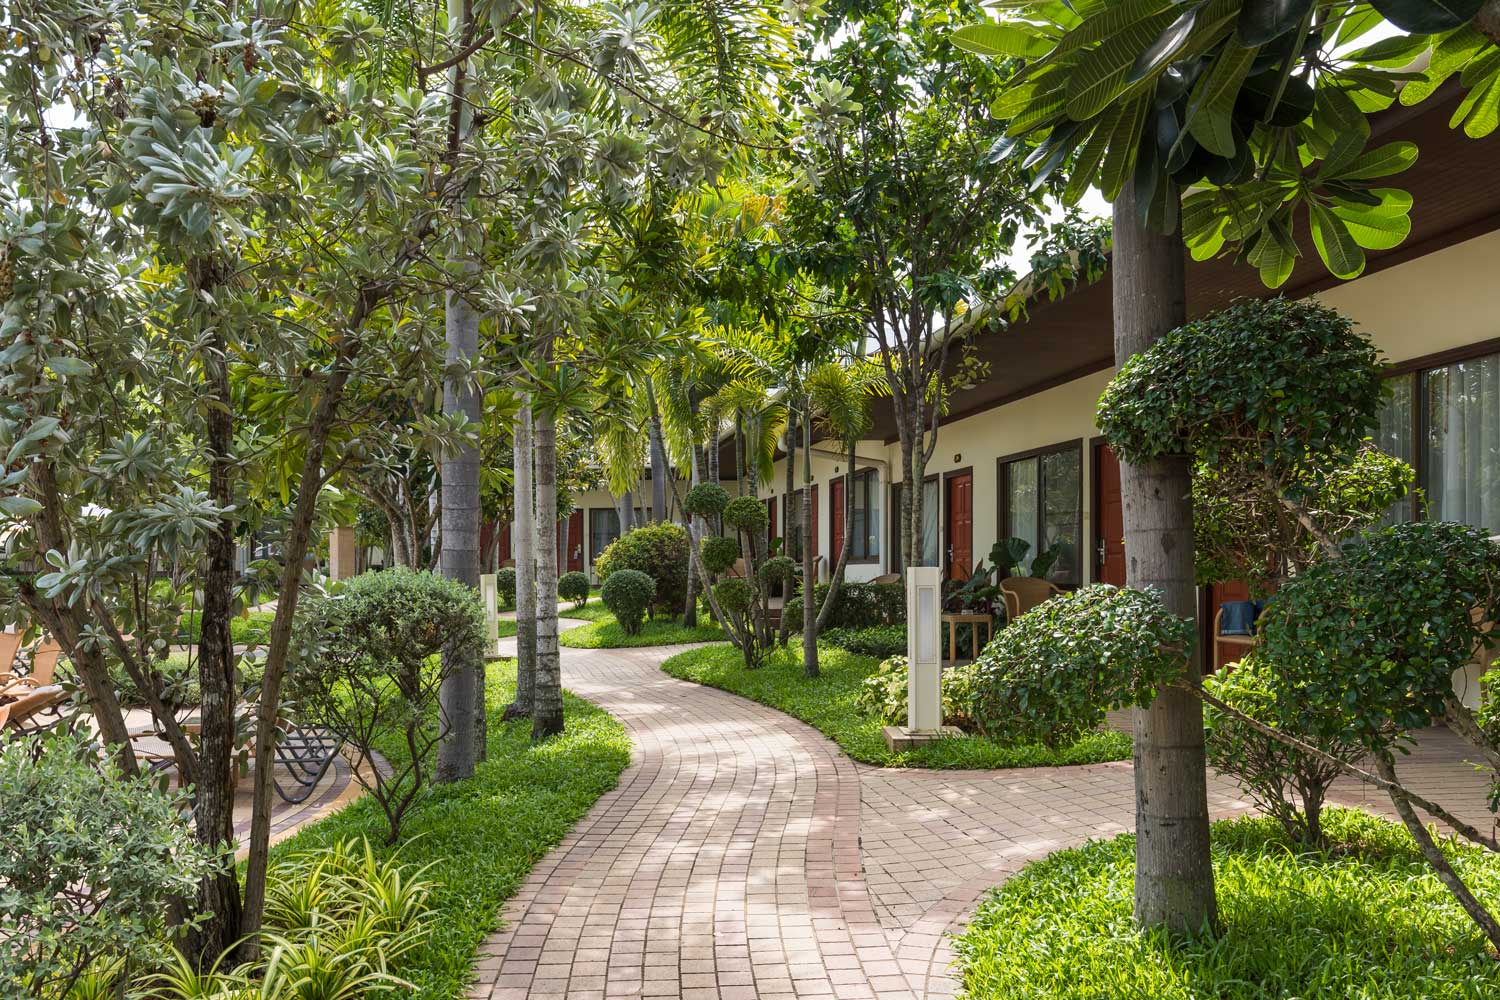 Hotel with a Tropical Garden Paradise Thai Garden Resort Pattaya Thailand